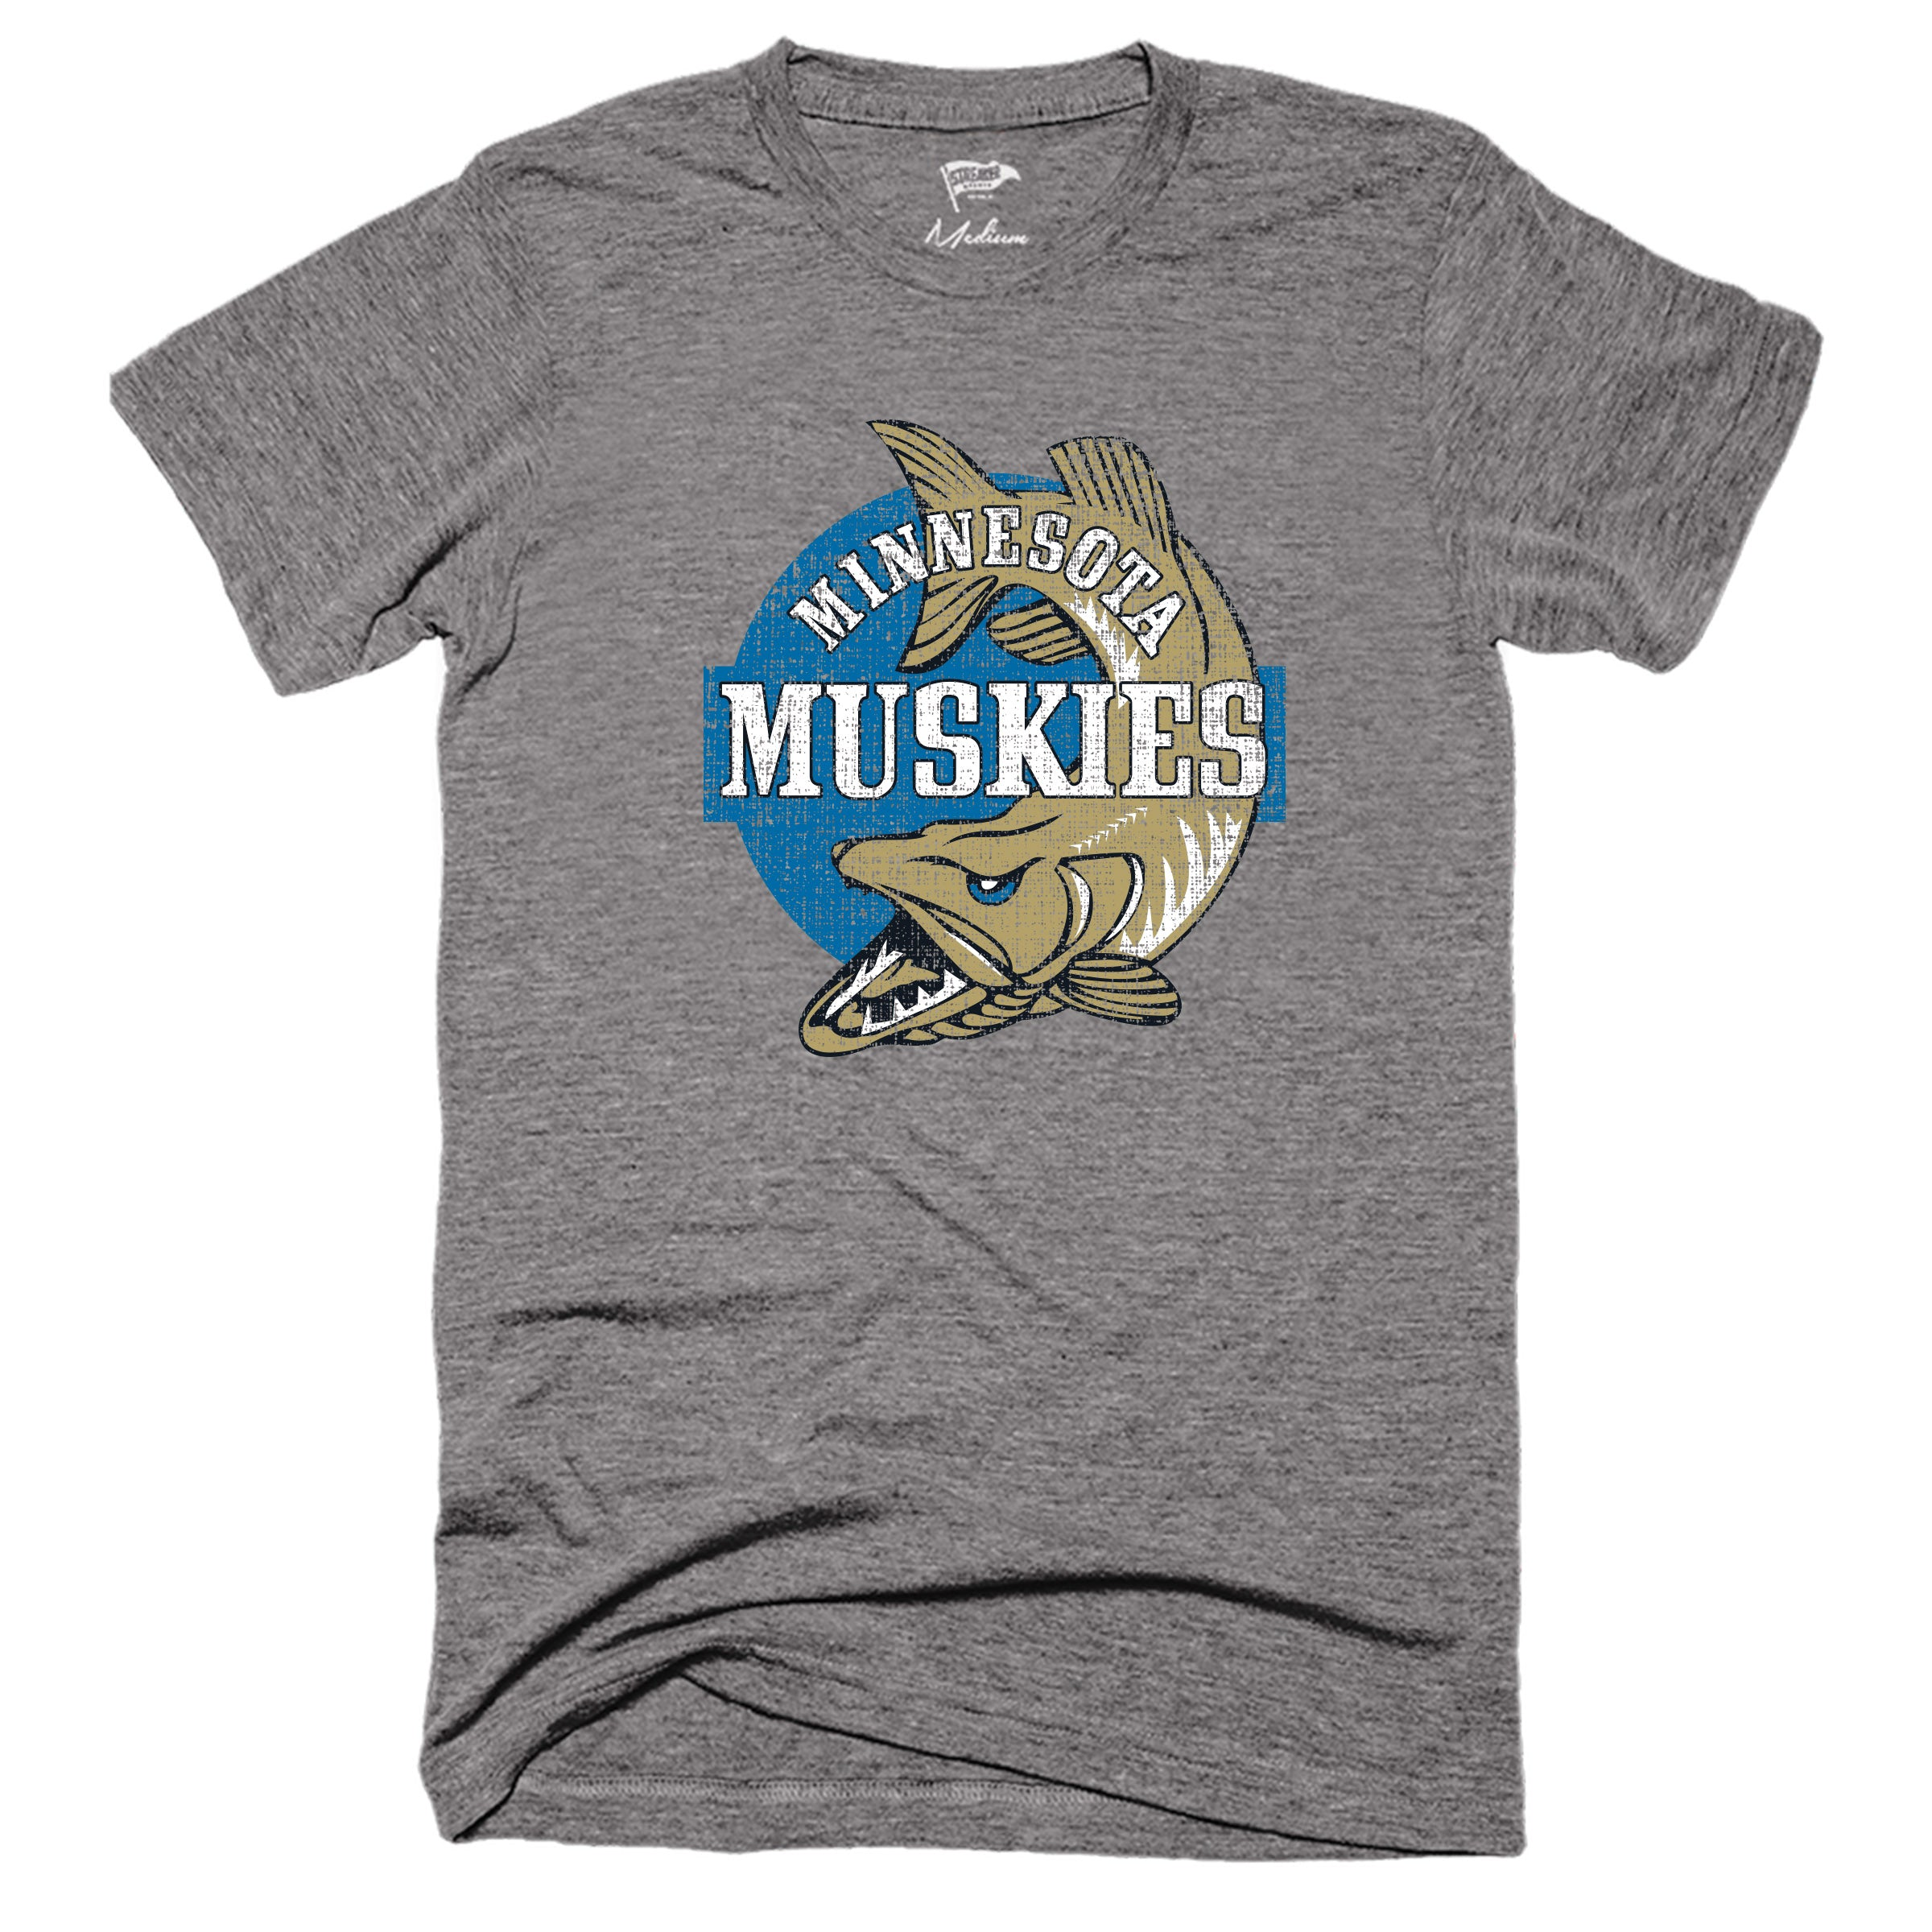 1967 Minnesota Muskies Tee - Streaker Sports